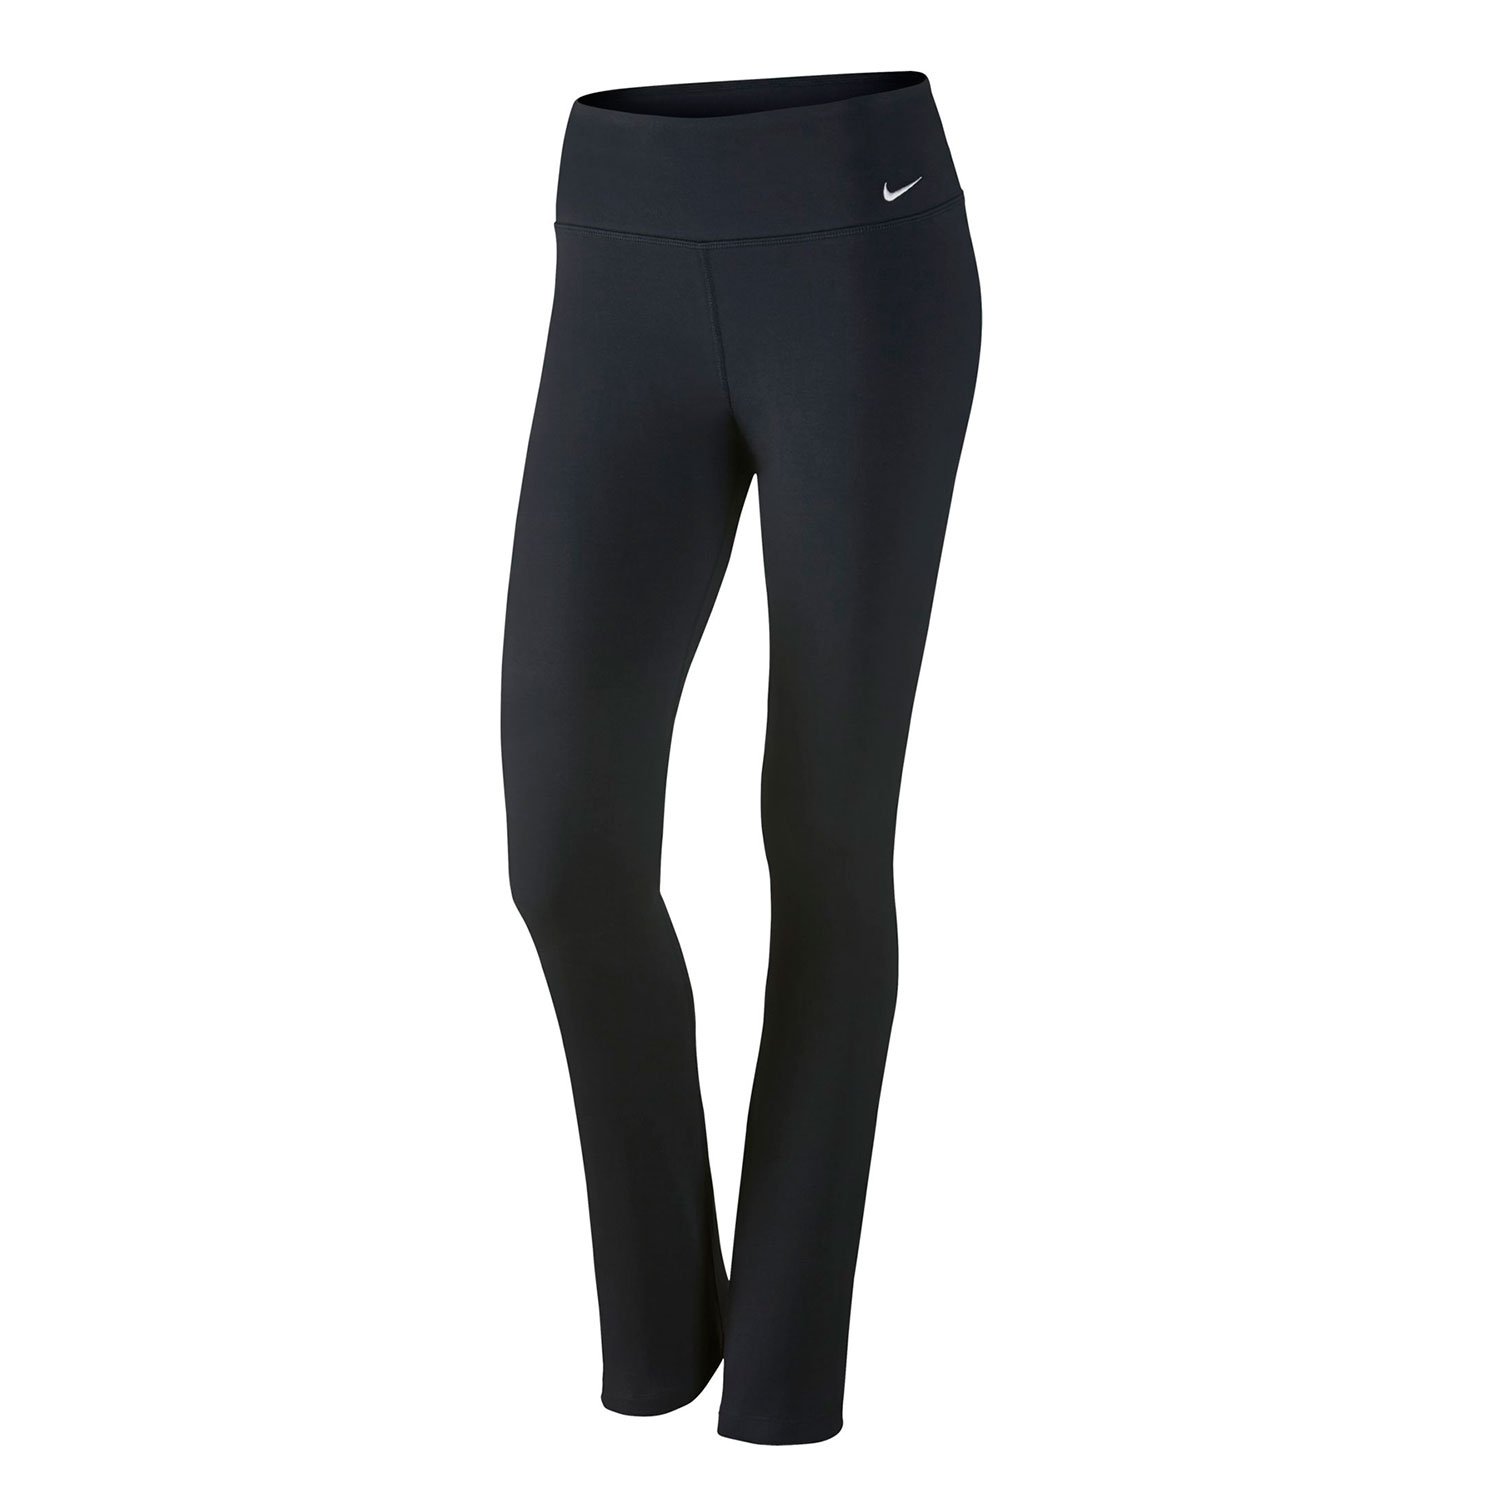 Awesome Womens Nike Power Speed Running Capris Black 801694016 XS Nike Womens Power Speed Compression Running Capri Tights XSmall, BlackHyper Pink Nike Power Speed Womens Running Capris Tights XSmall, Light Photo